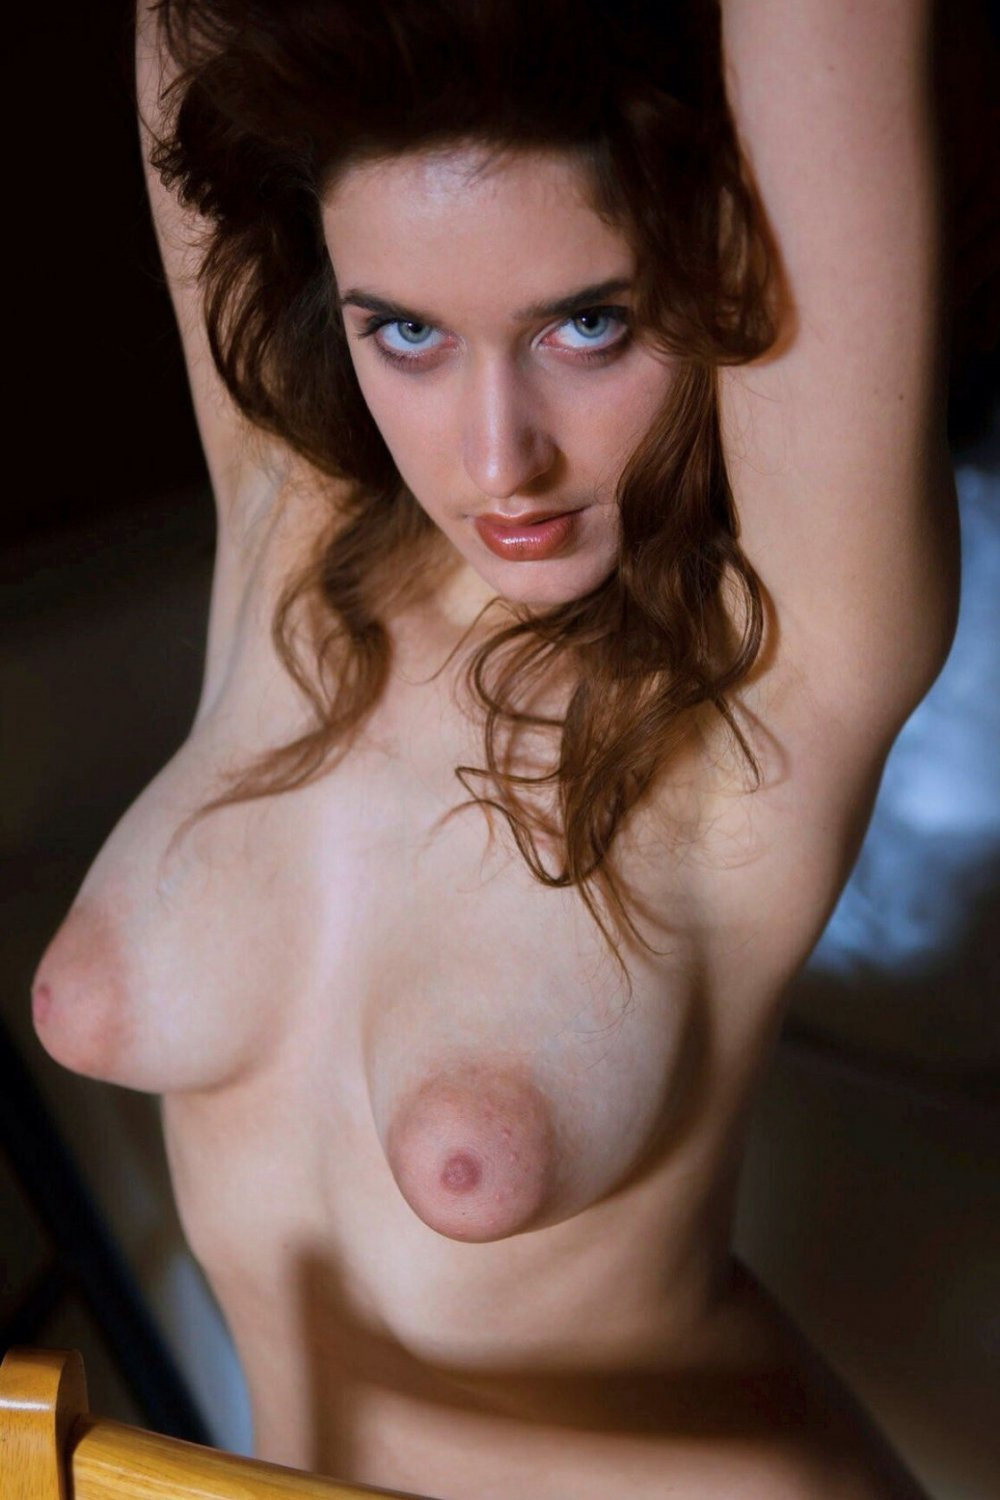 perfect boobs and nipples